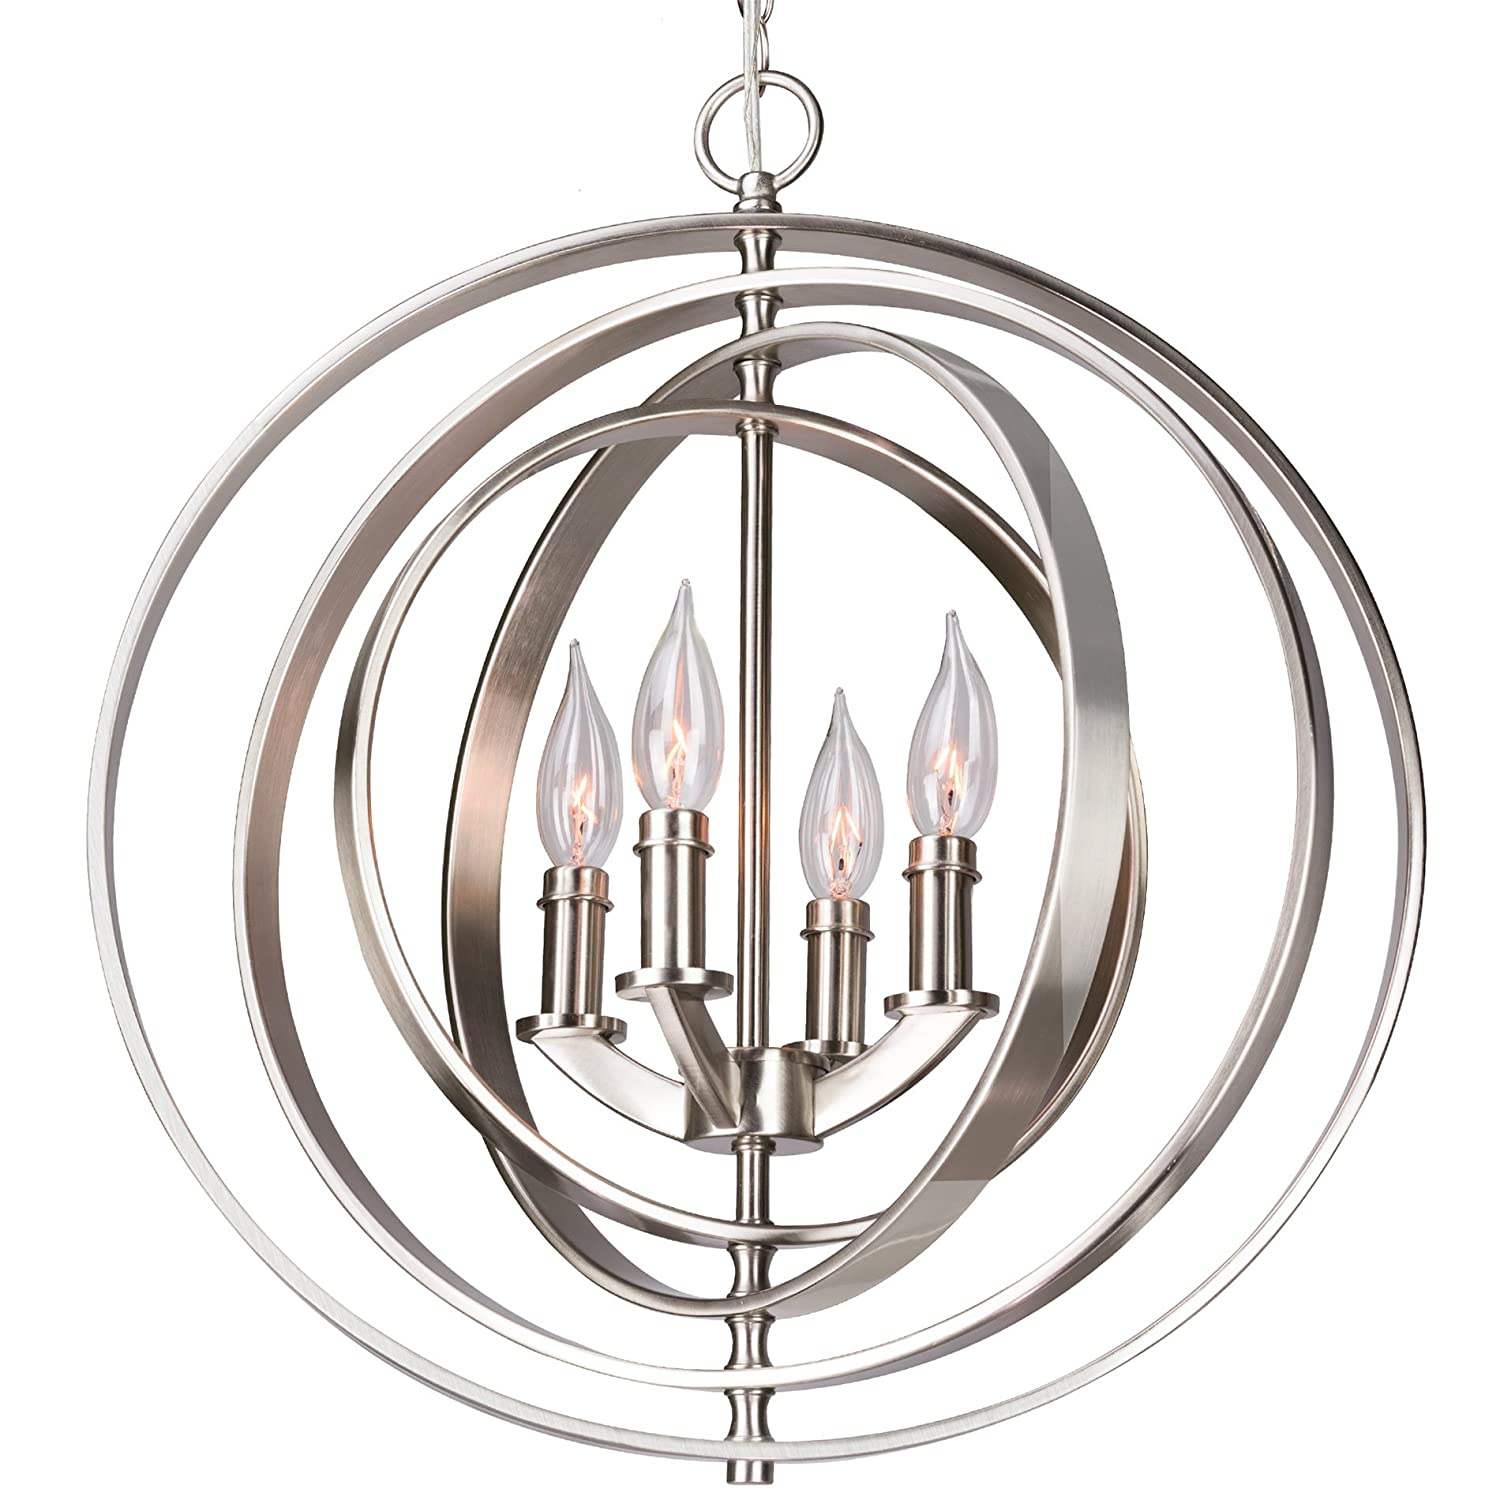 "Kira Home Orbits 18"" 4-Light Modern Sphere/Orb Chandelier, Brushed Nickel Finish"